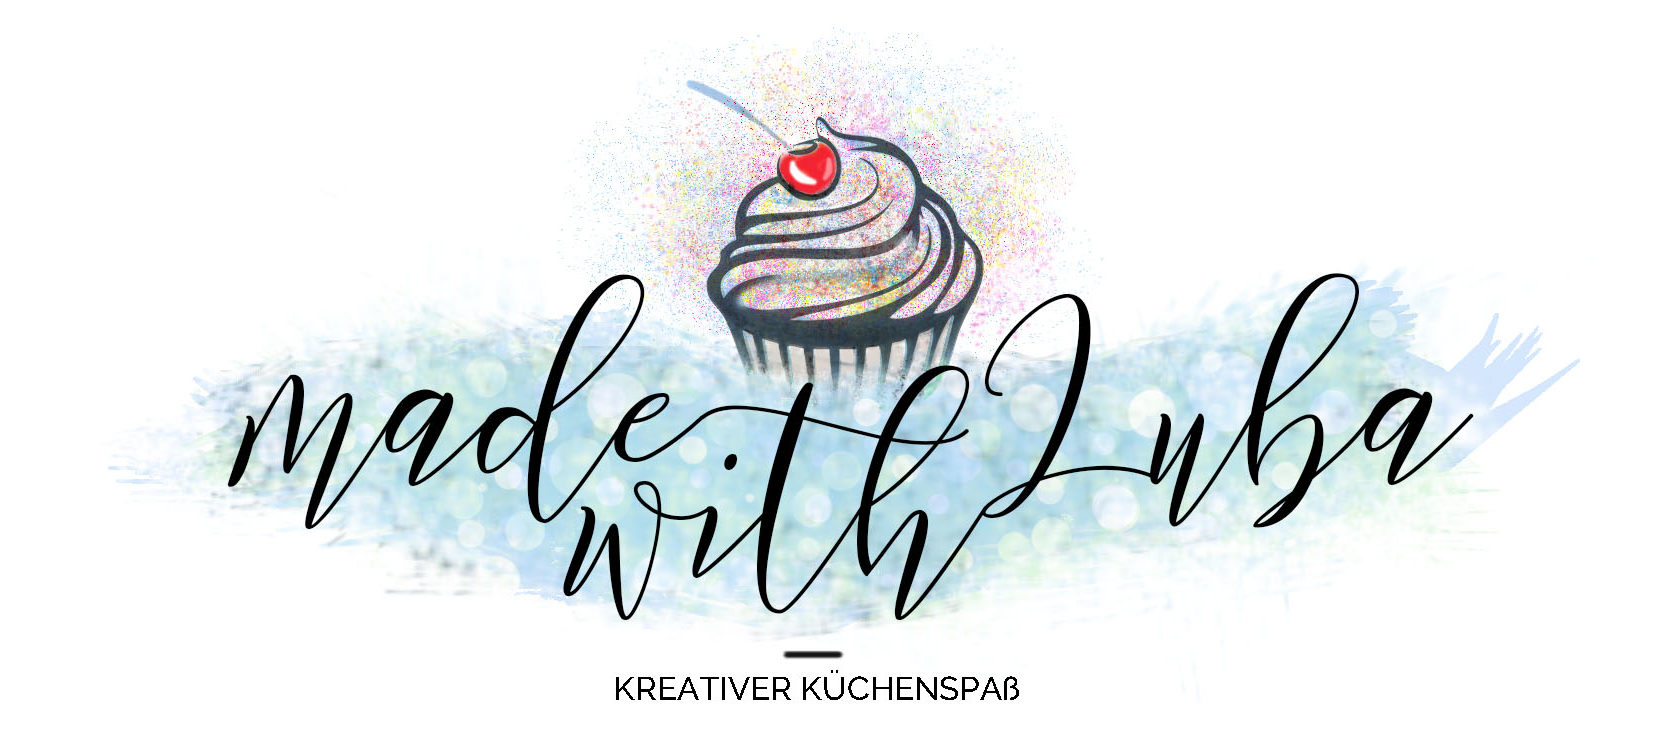 Made with Luba – Kreativer Küchenspaß